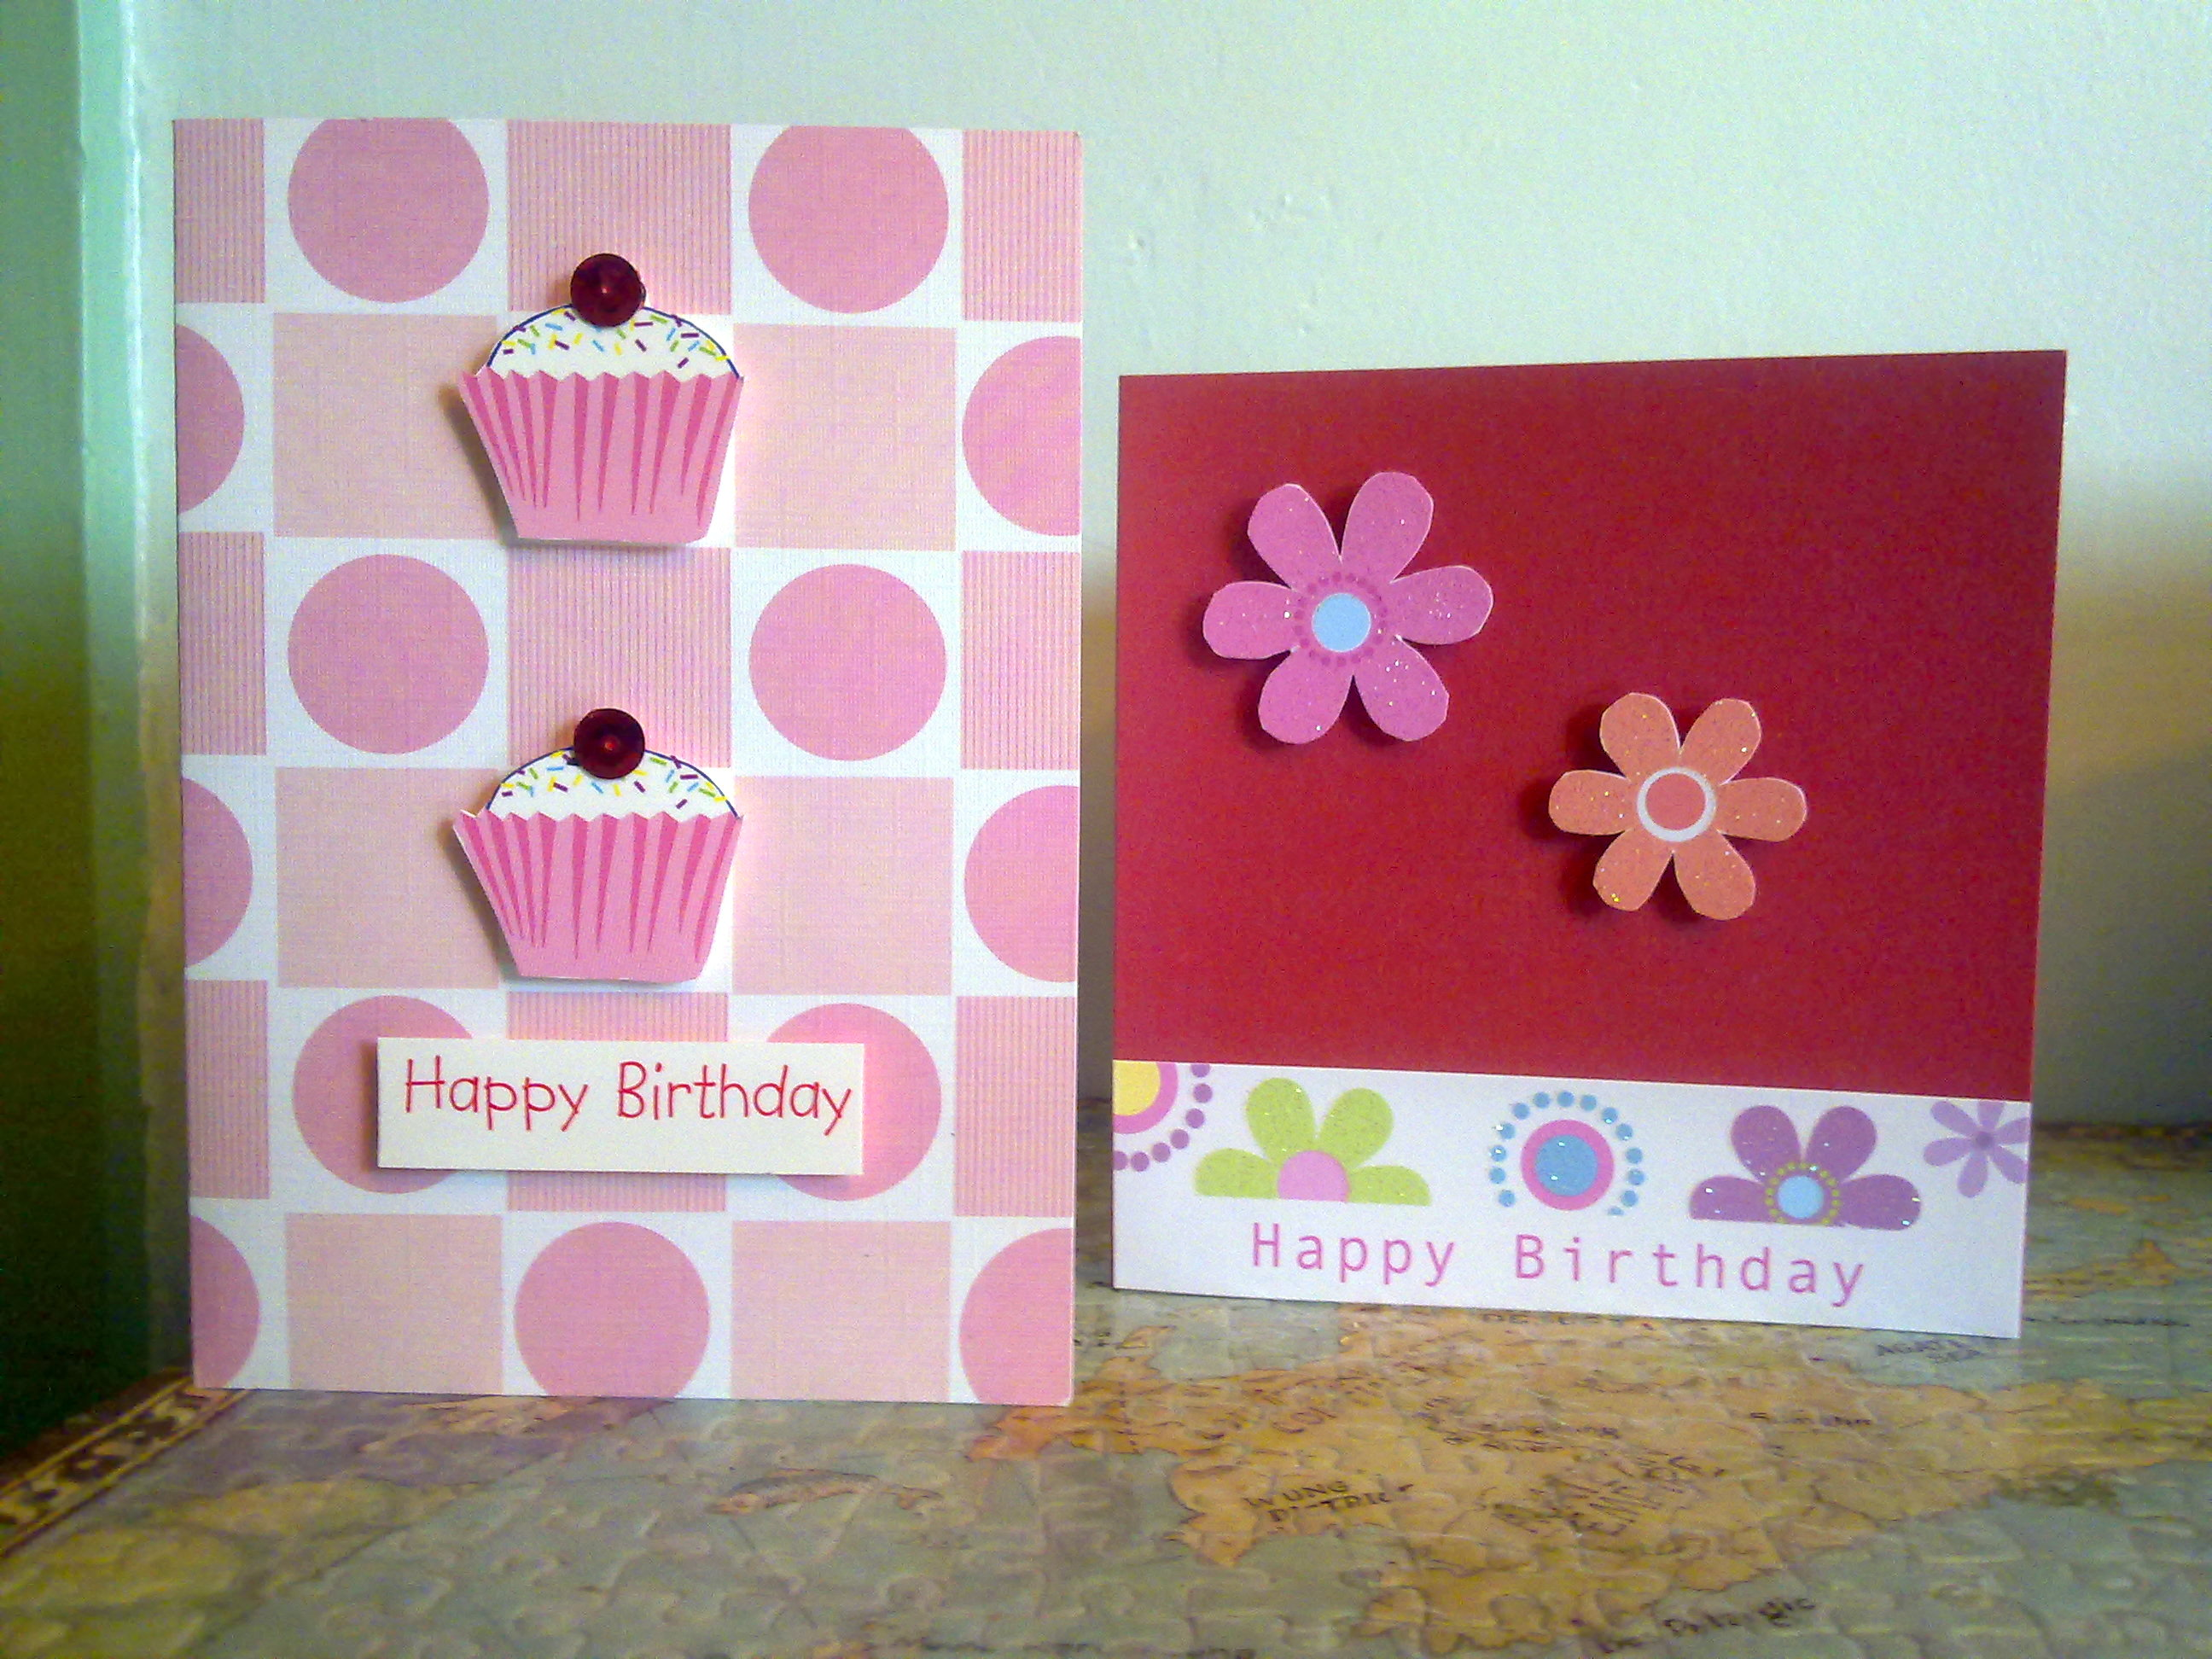 Top tips tuesday recycle your old greeting cards sew make believe the cupcakes on the first card originally had little red birds on the top i trimmed around them and added a red sequin to each hide them kristyandbryce Images